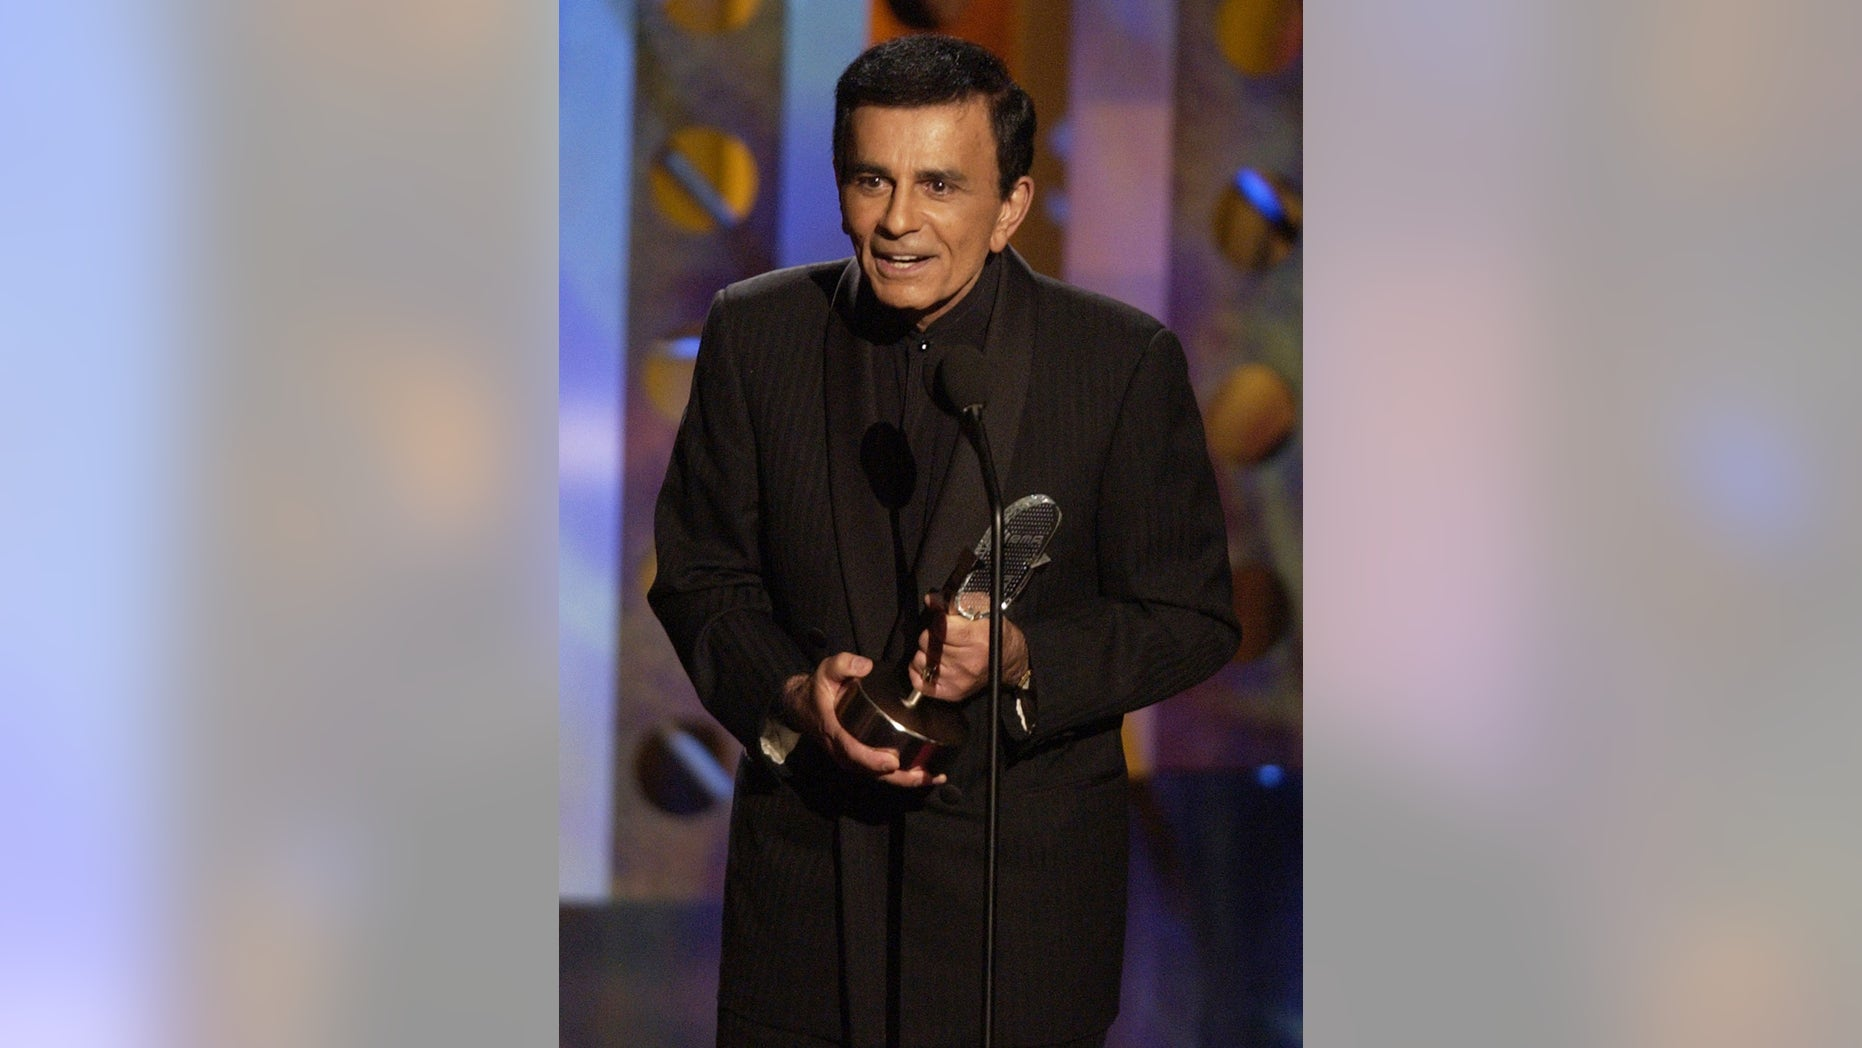 Oct. 27, 2003. Casey Kasem accepts a radio icon award during the Radio Music Awards in Las Vegas.